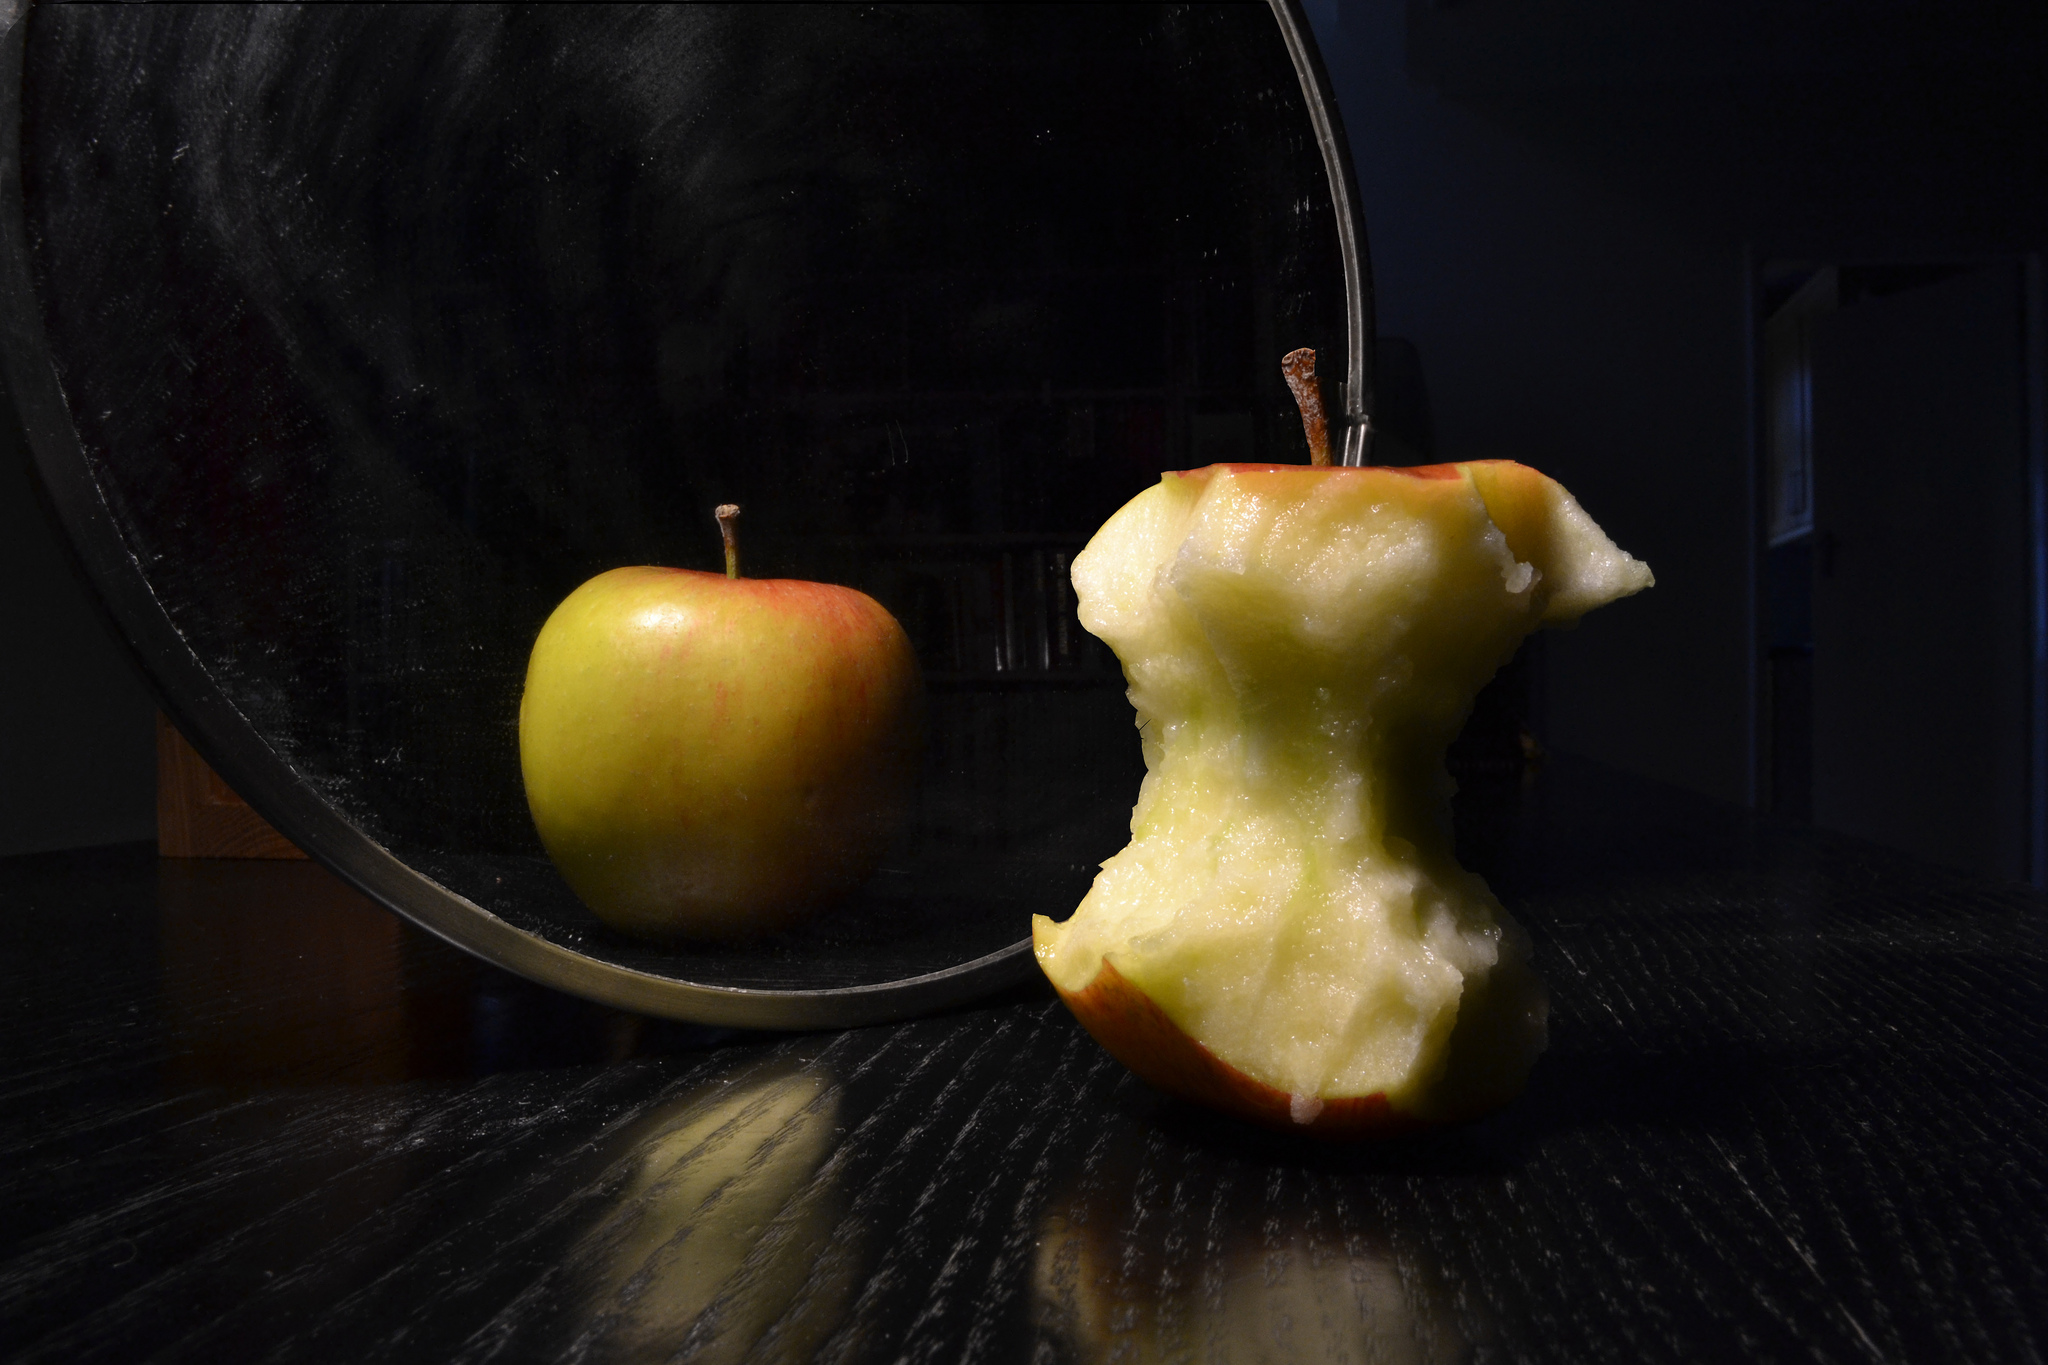 Apple in the mirror. The apple is whole but the reflection is eaten.